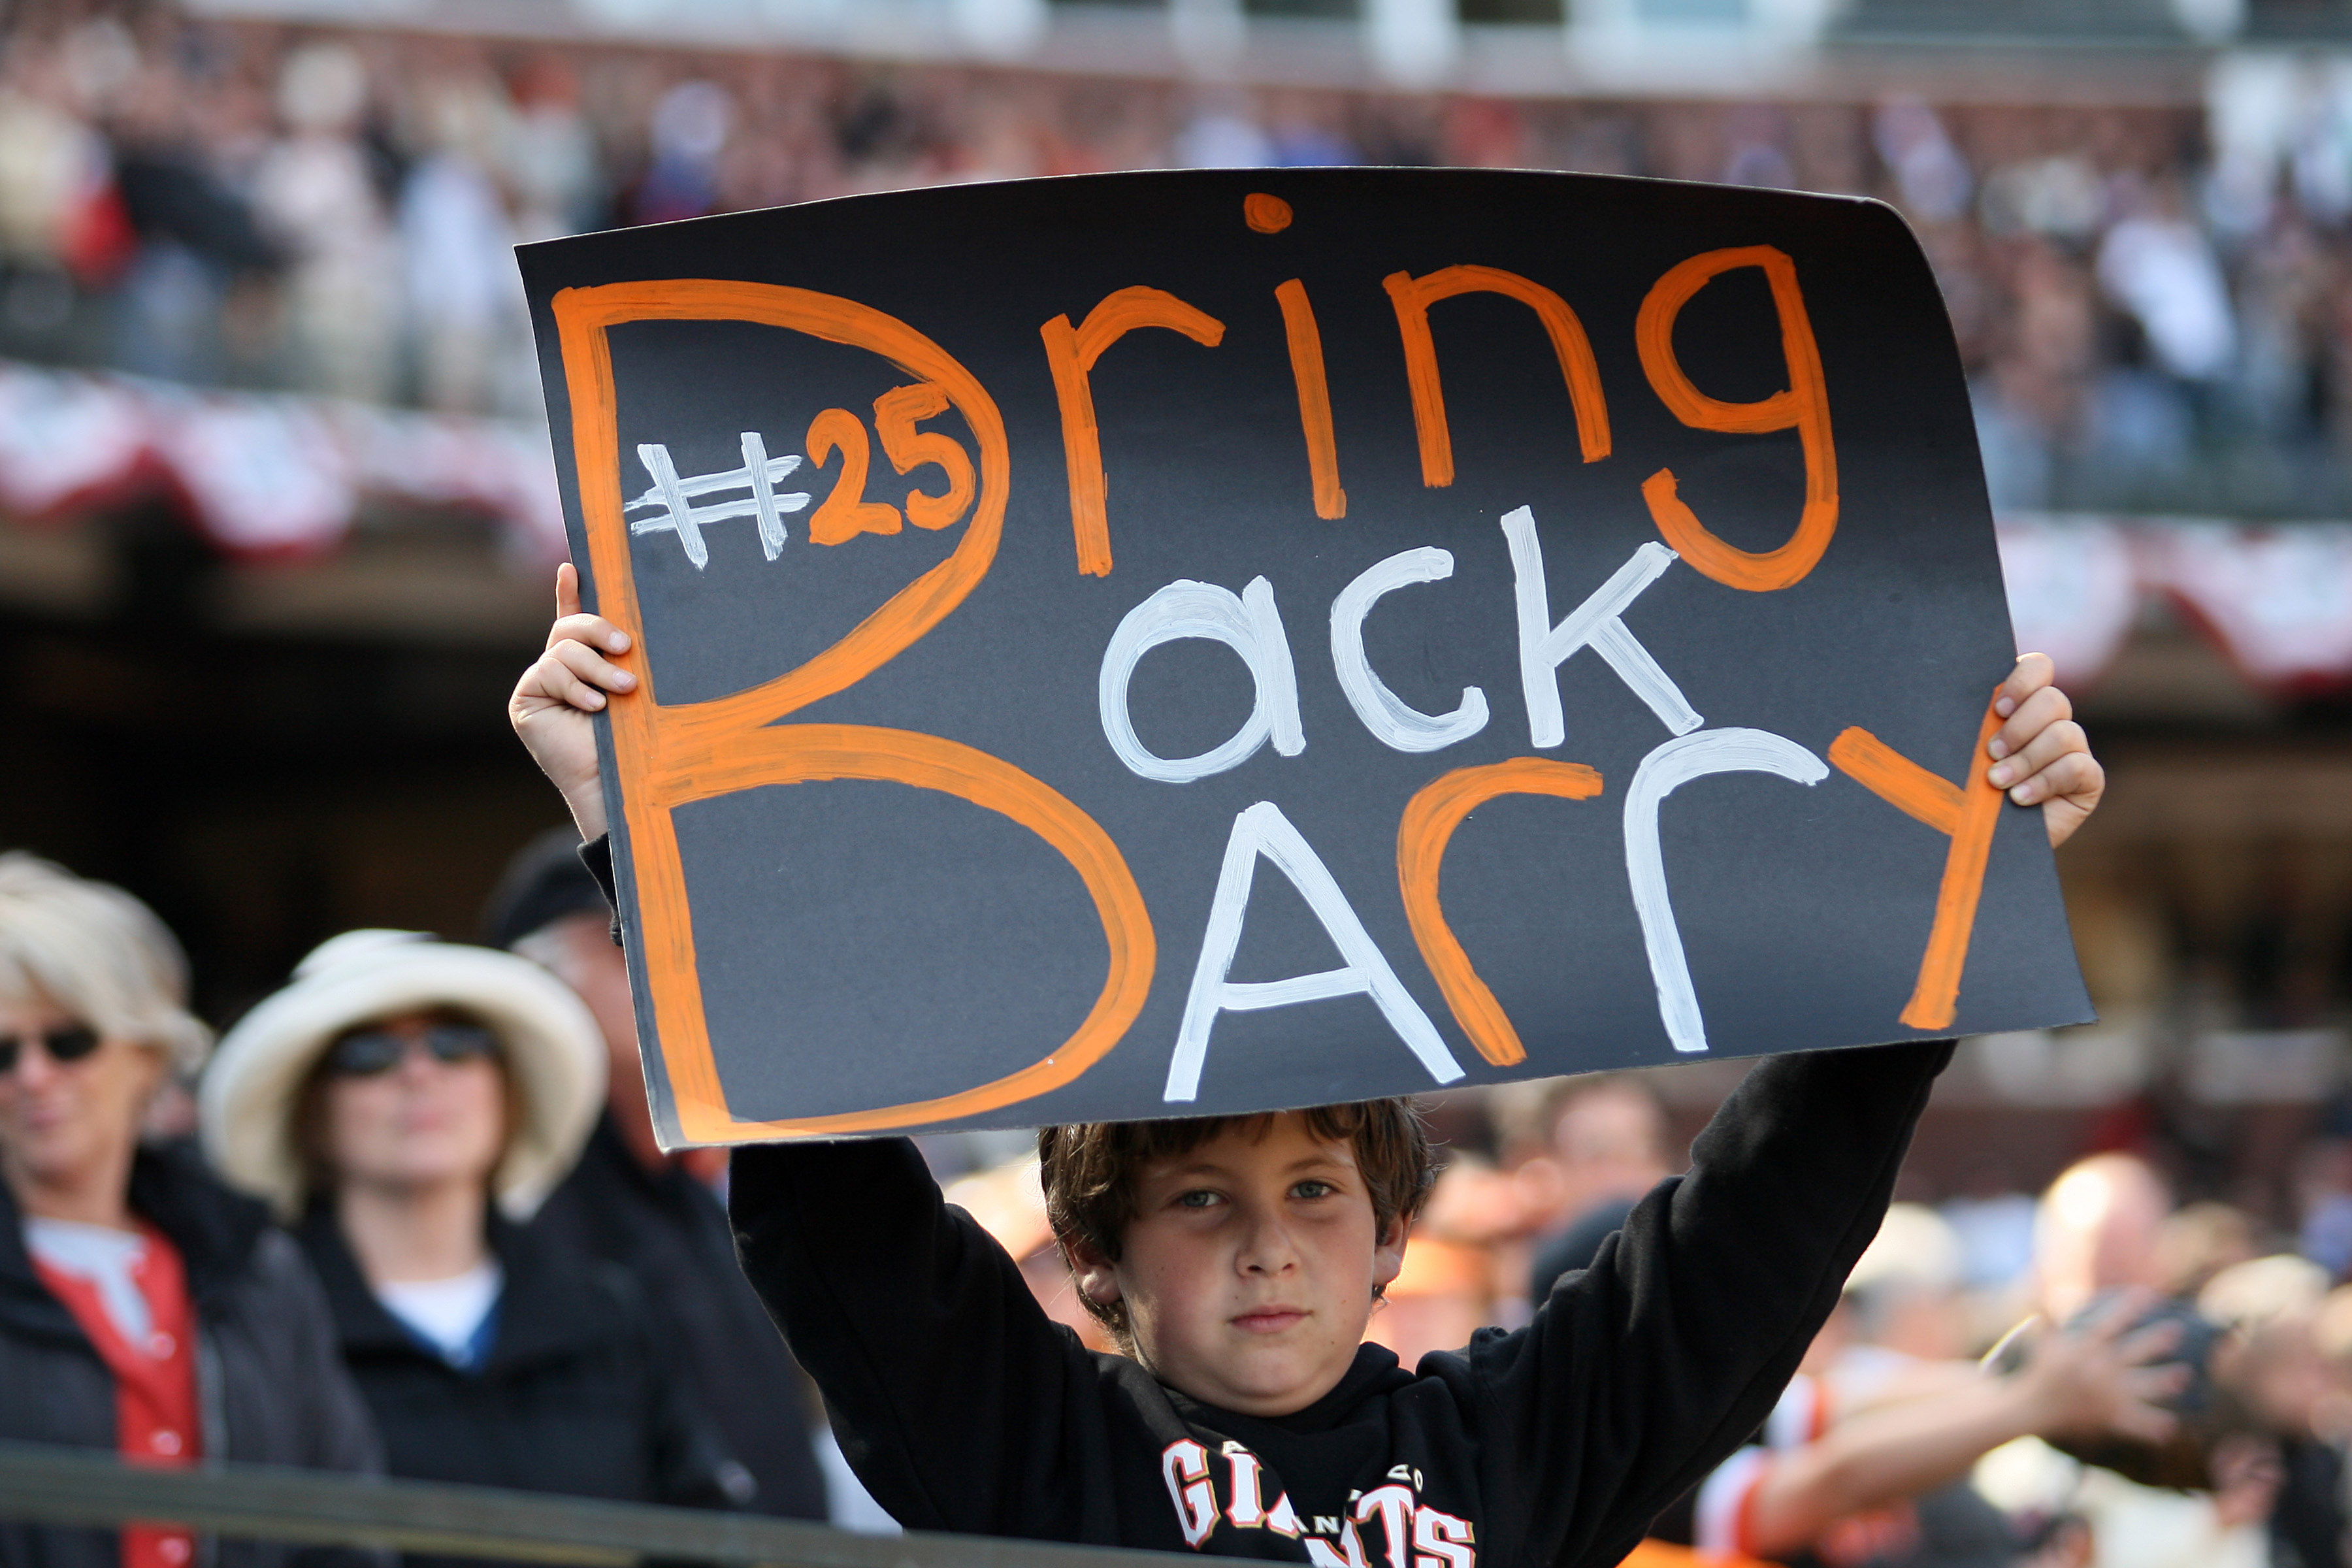 SAN FRANCISCO - APRIL 7:  A young San Francisco Giants fan holds a sign imploring the Giants to Bring Back Barry (Bonds) during the opening day game against the San Diego Padres on April 7, 2008 at AT&T Park in San Francisco, California. The Padres defeat